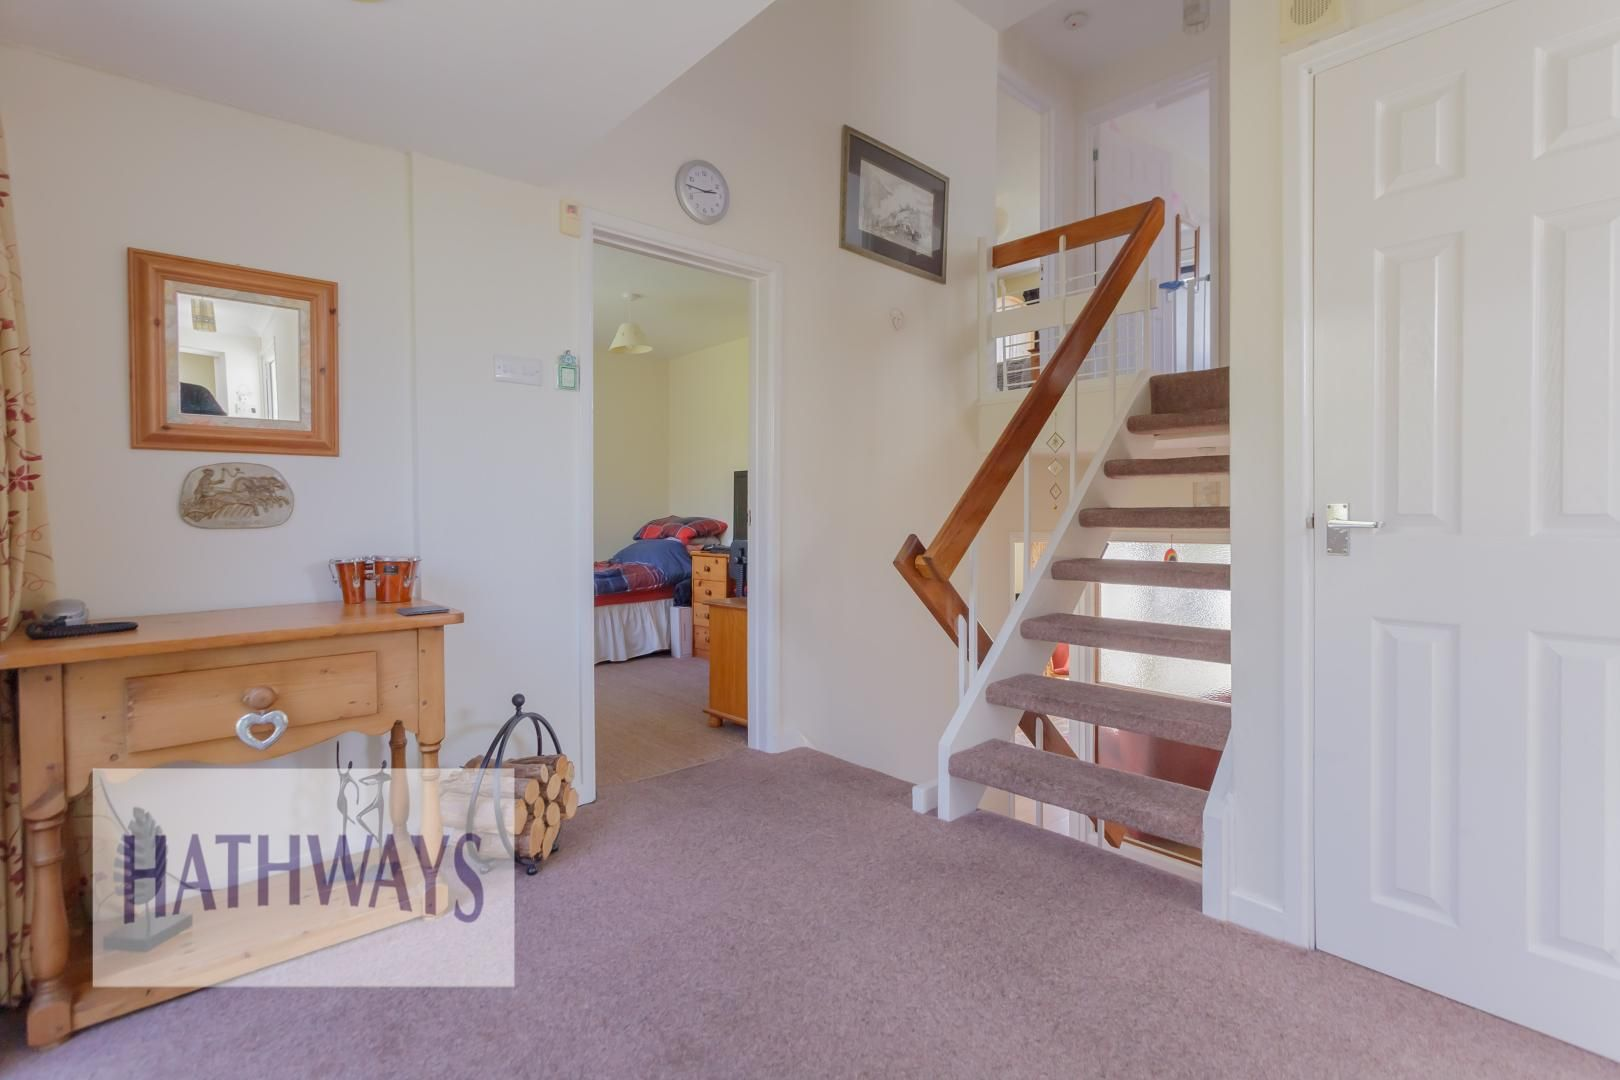 4 bed house for sale in Greenfield  - Property Image 5